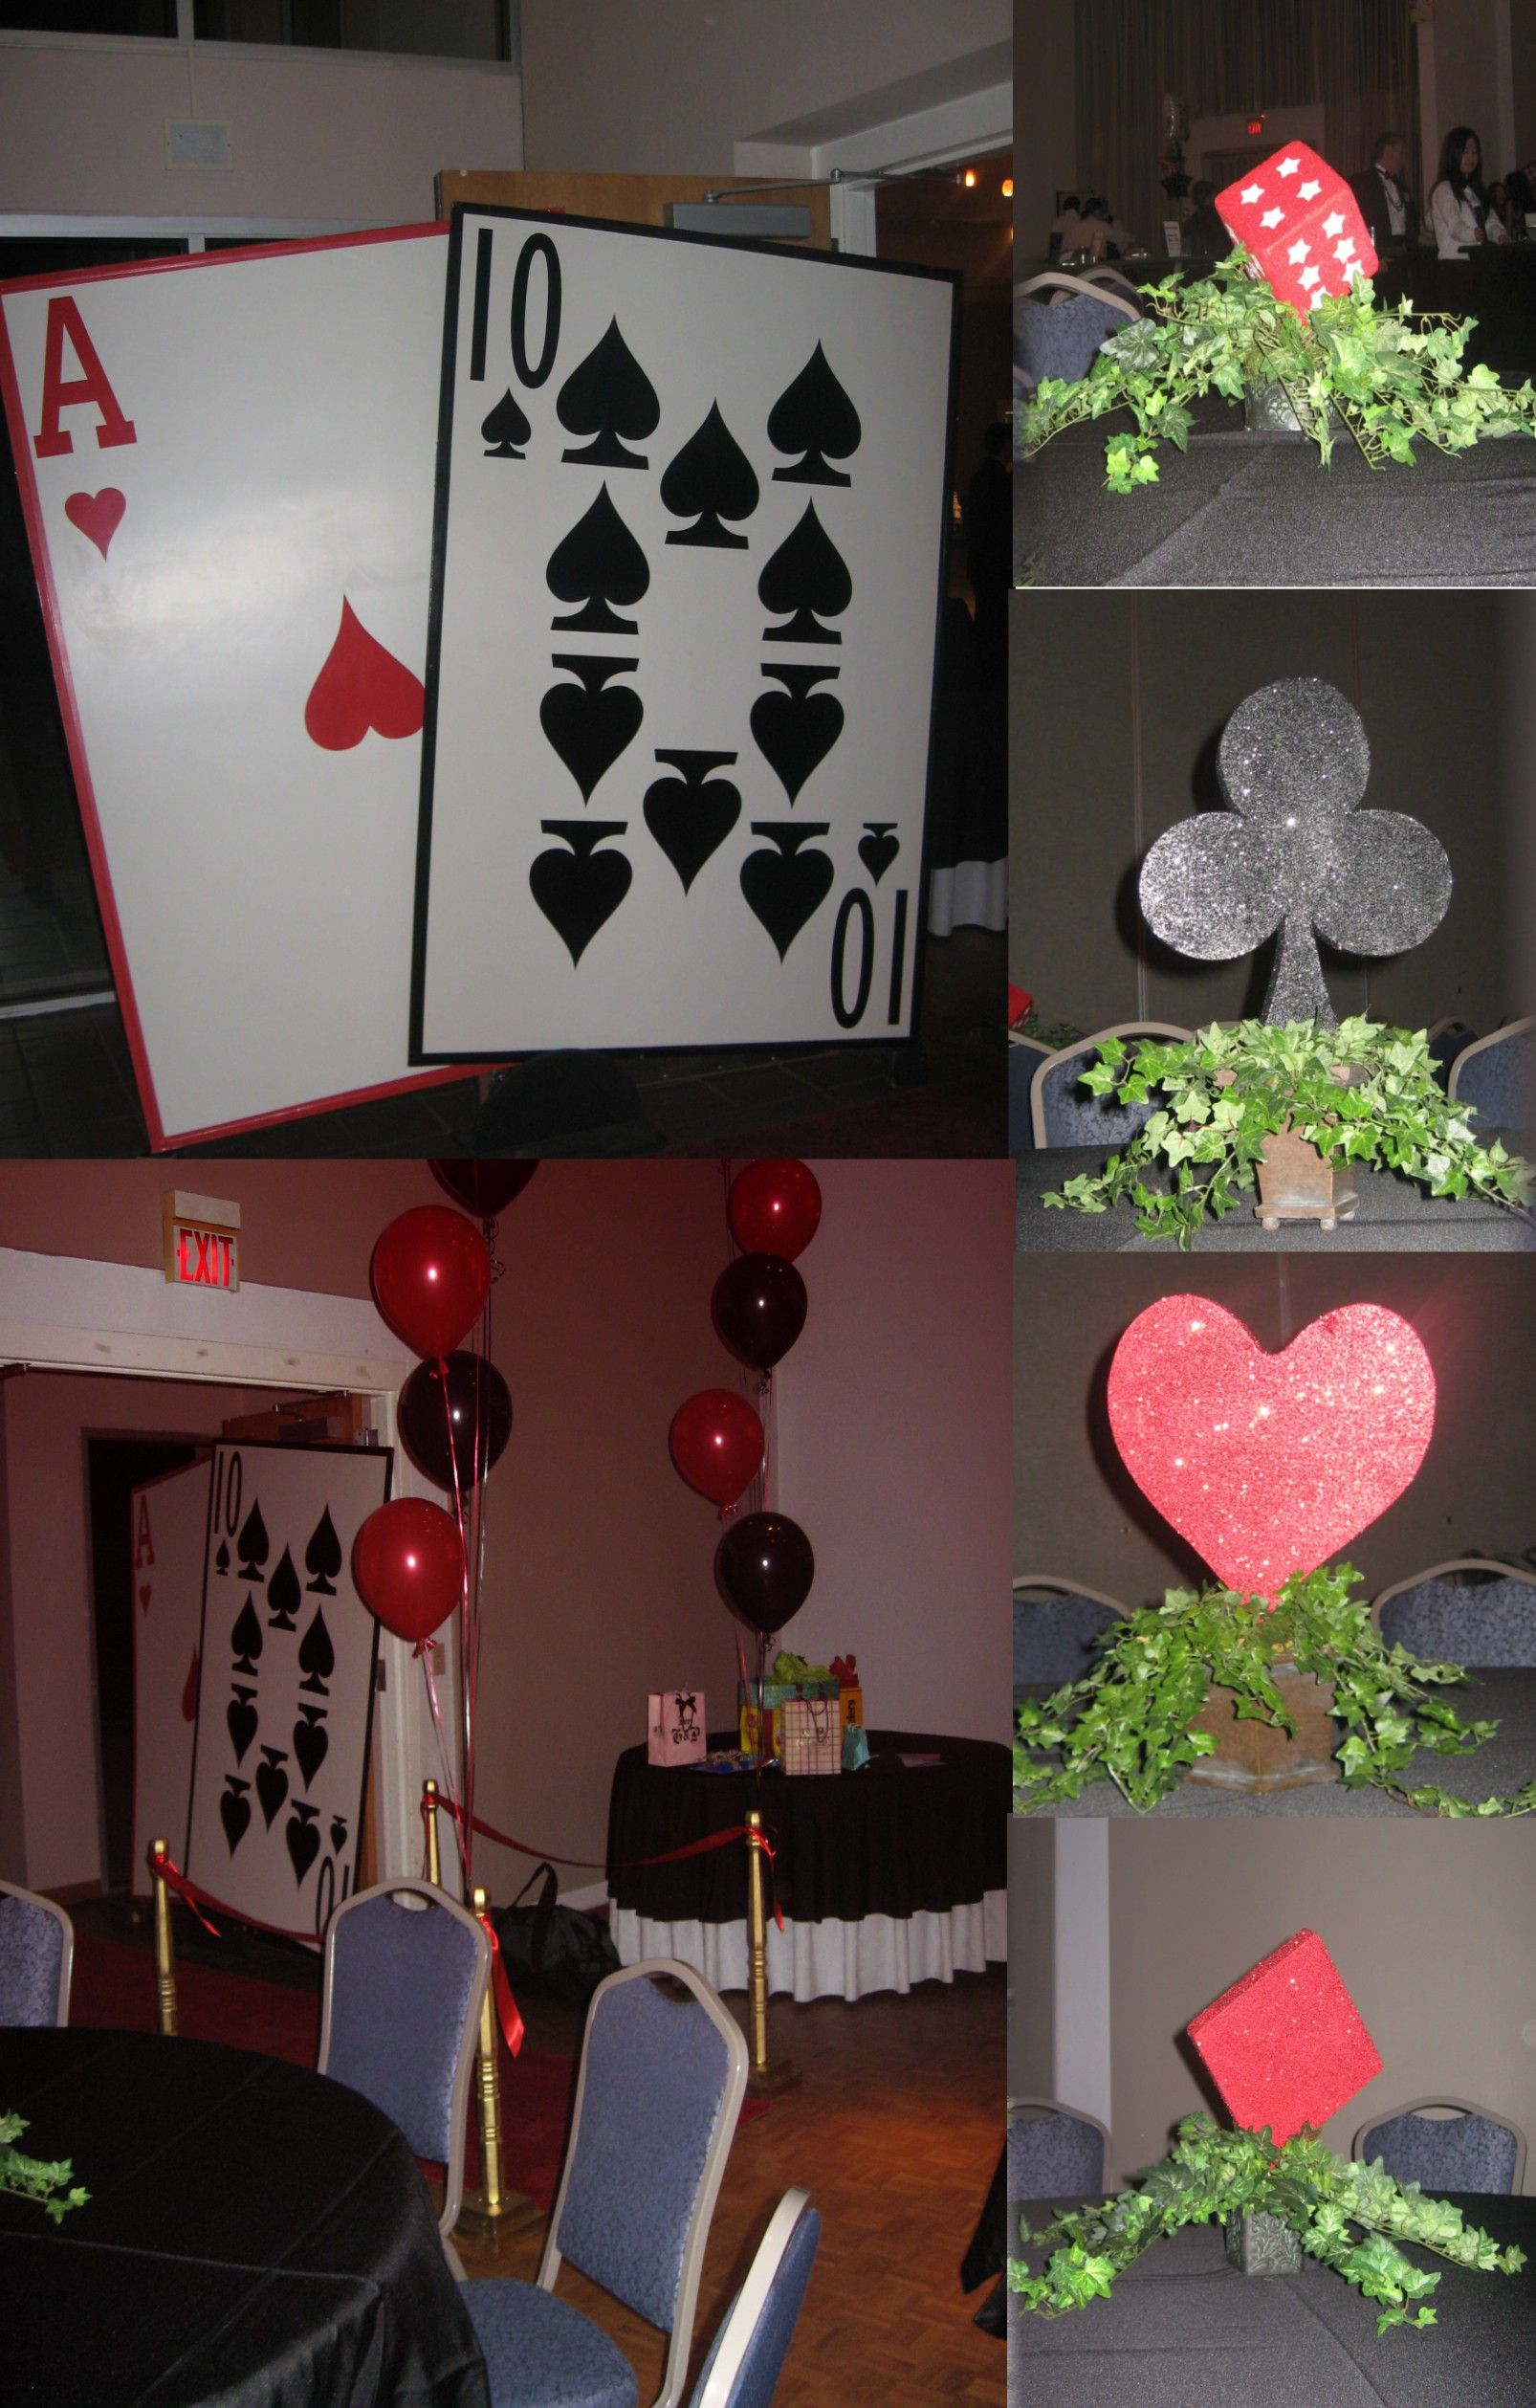 DIY Casino Party Decorations | How to Make a Budget DIY Poker Theme Centerpiece u2013 YouTube These might be good ideas : casino decorations ideas - www.pureclipart.com